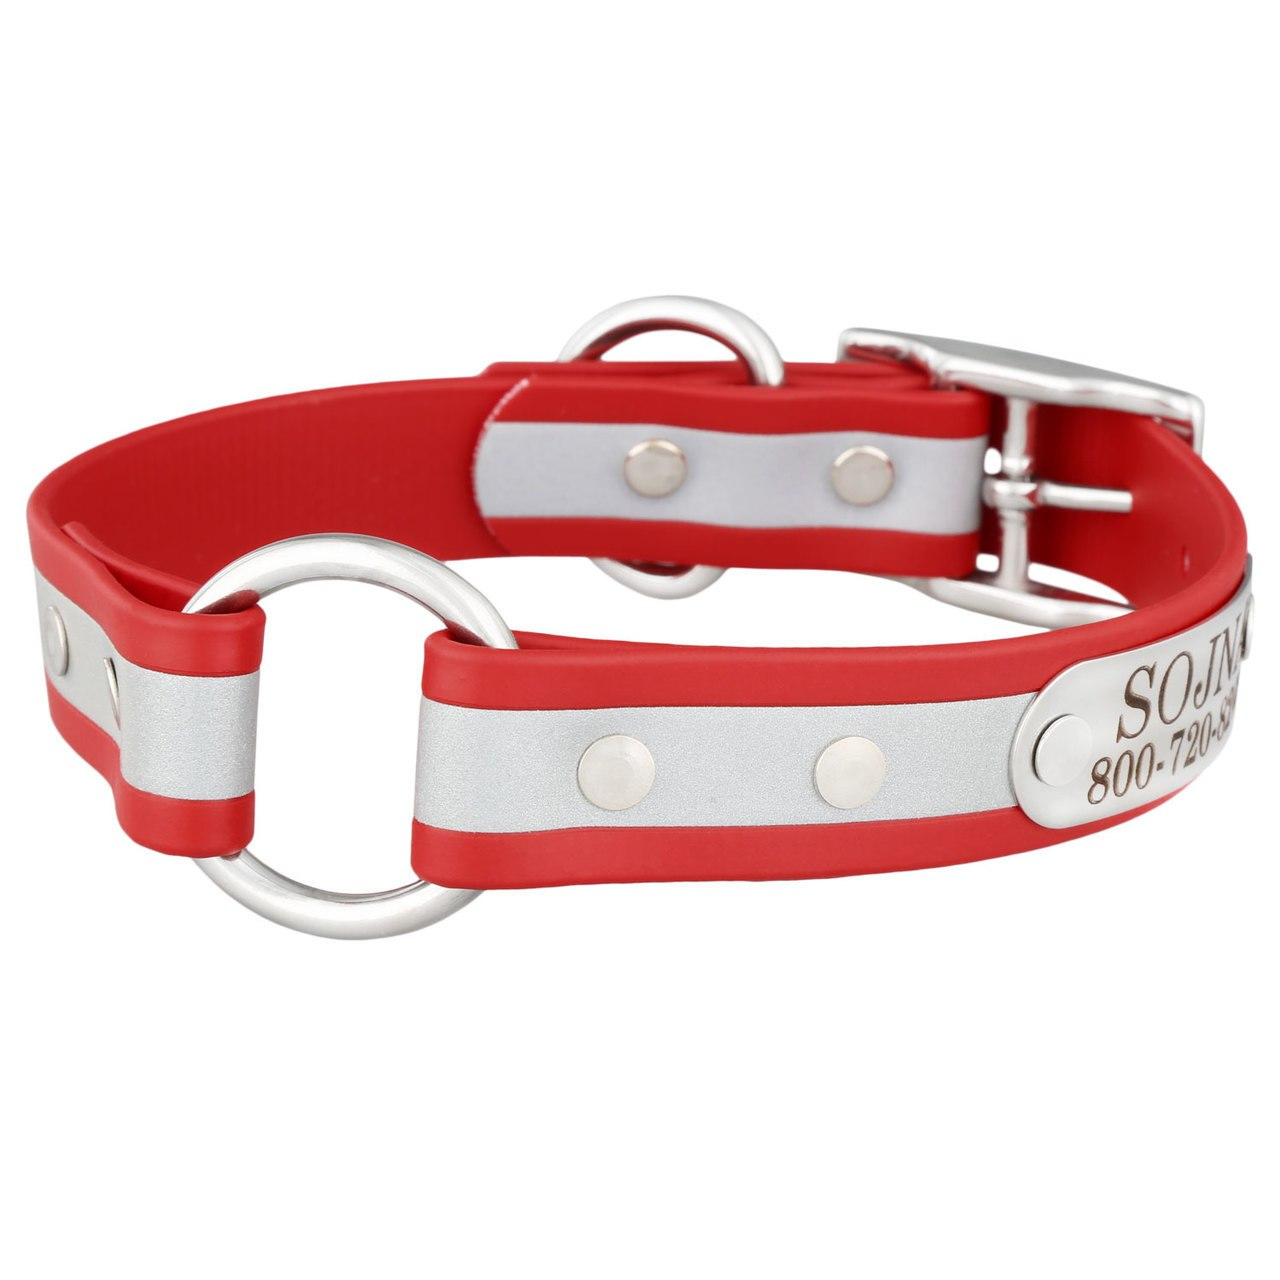 Personalized Waterproof Reflective Safety Dog Collar Red